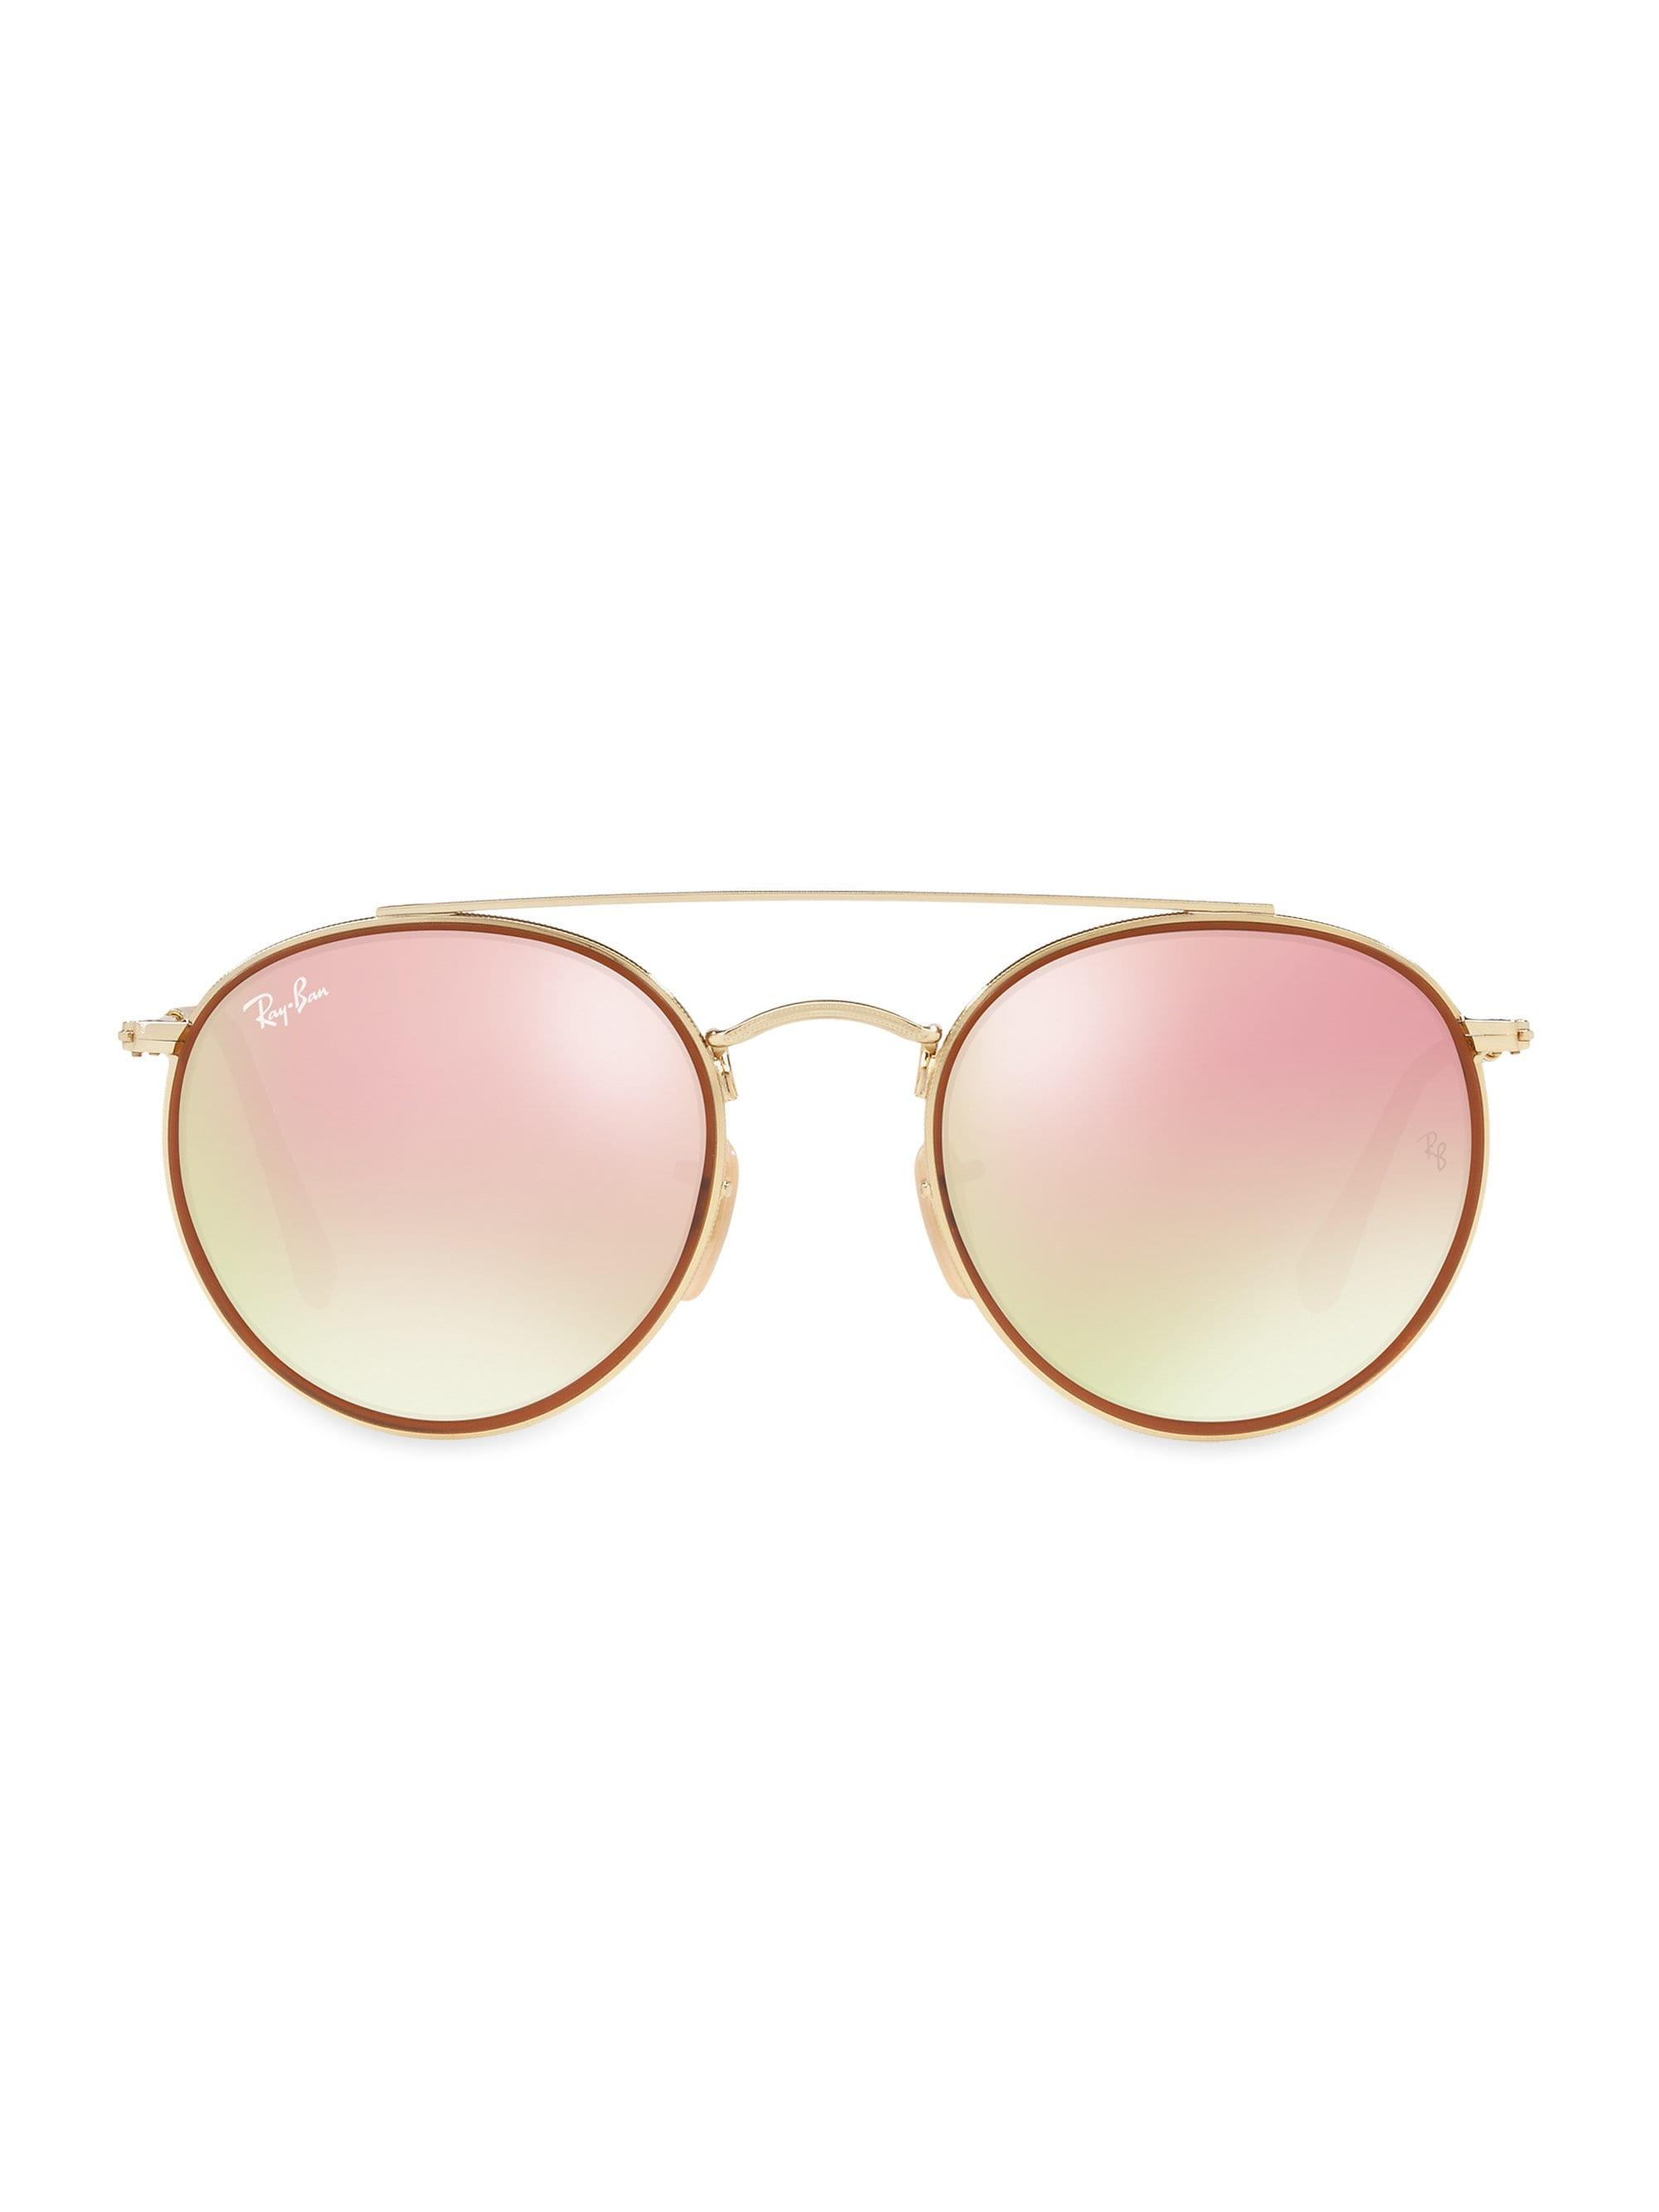 cce83d398f6 Ray-Ban. Women s 51mm Mirrored Round Double Bridge Sunglasses - Gold Pink